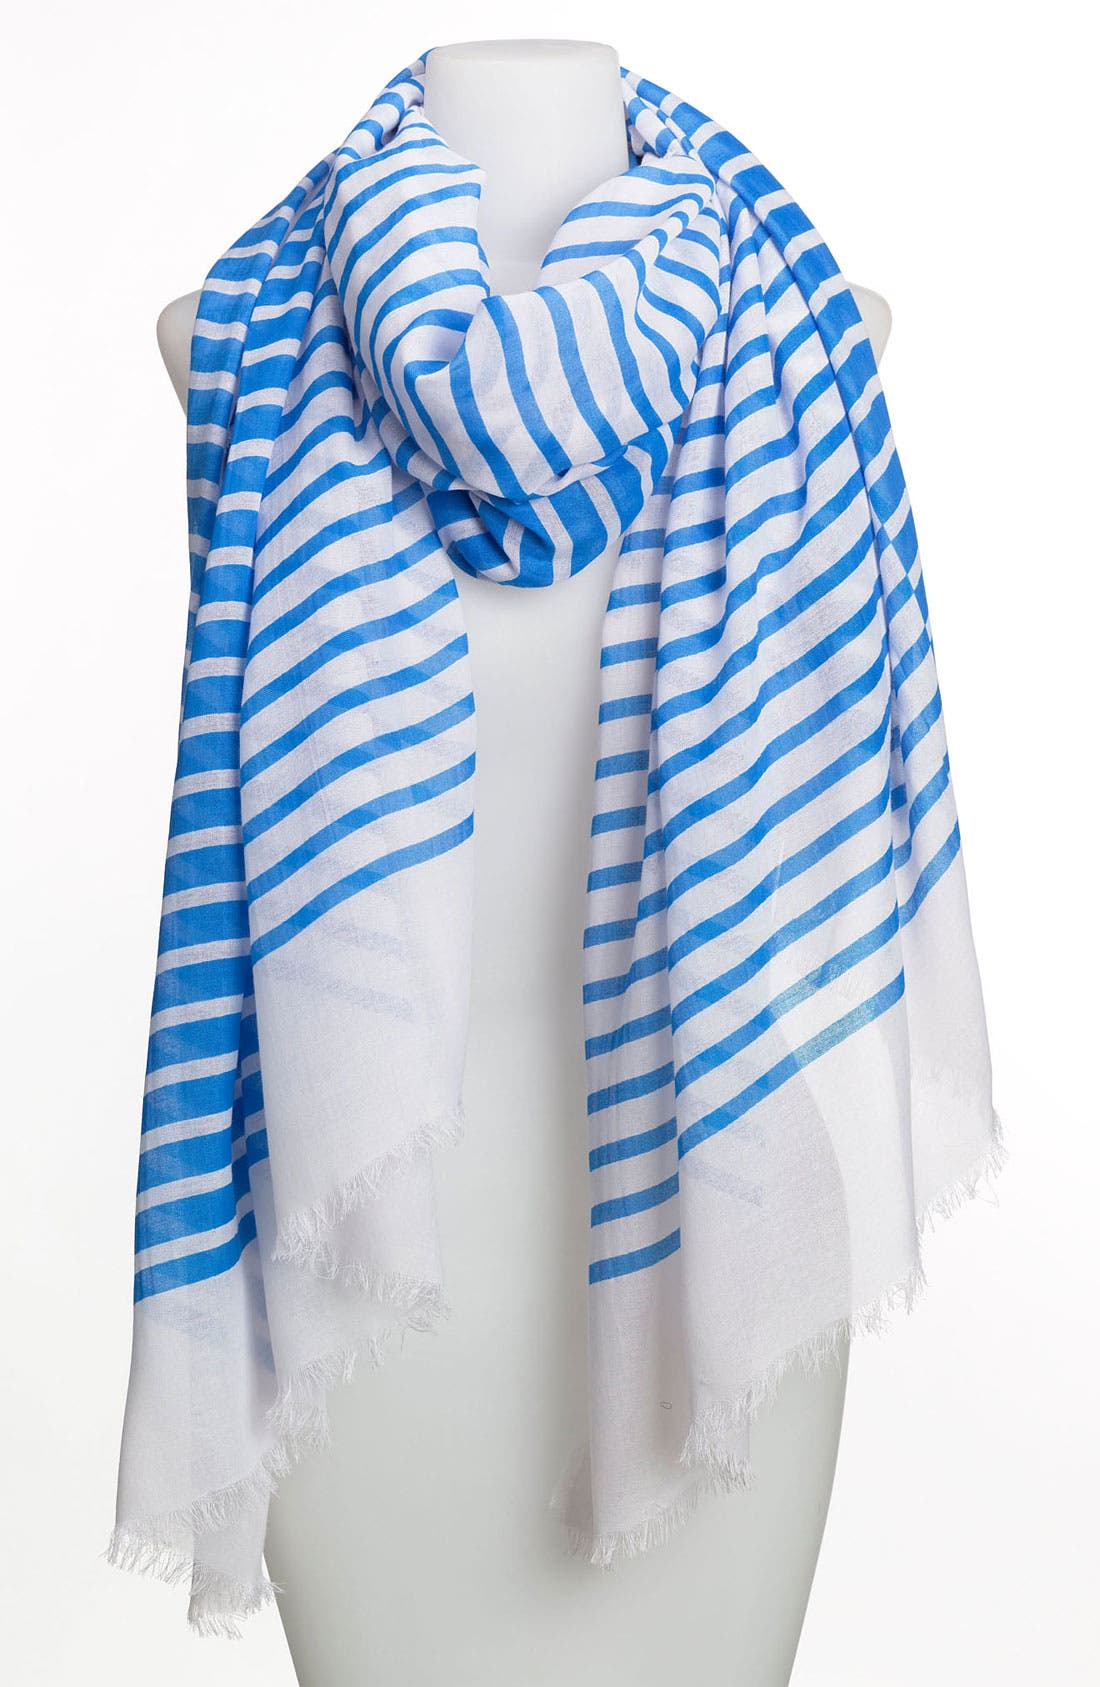 Main Image - Steve Madden 'Double Take' Scarf